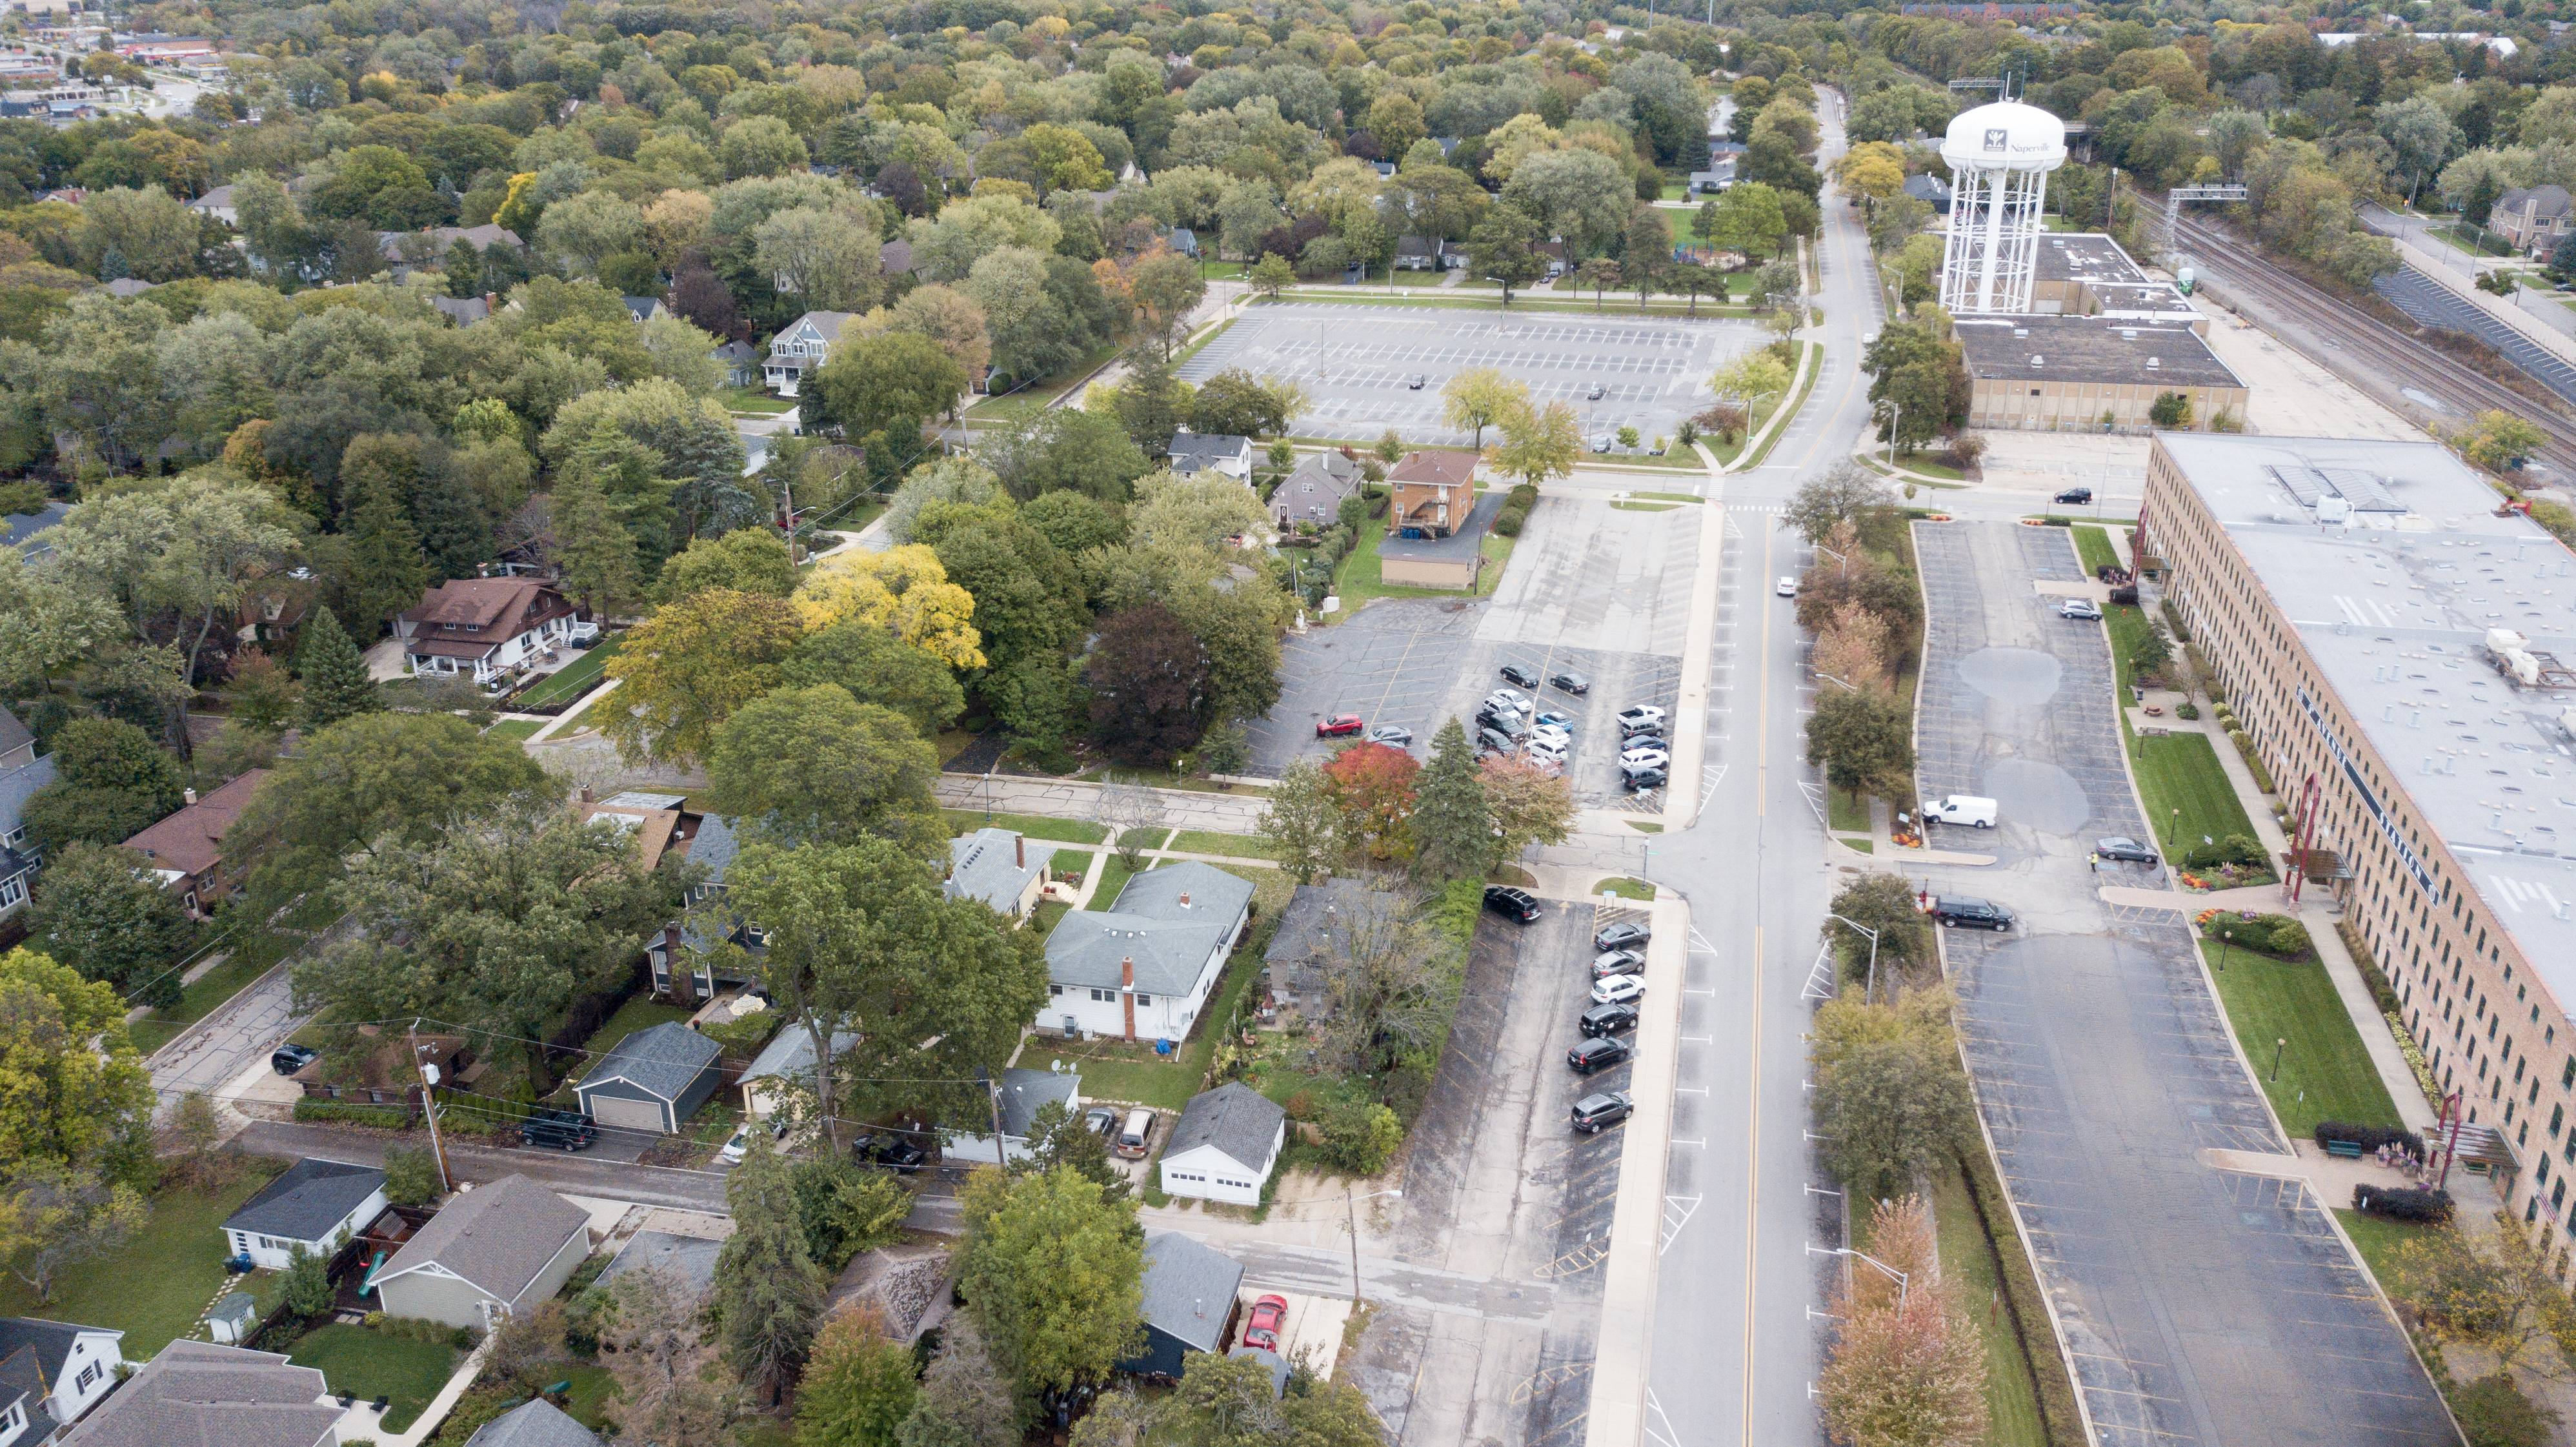 Naperville anxious about next steps in 5th Avenue redevelopment